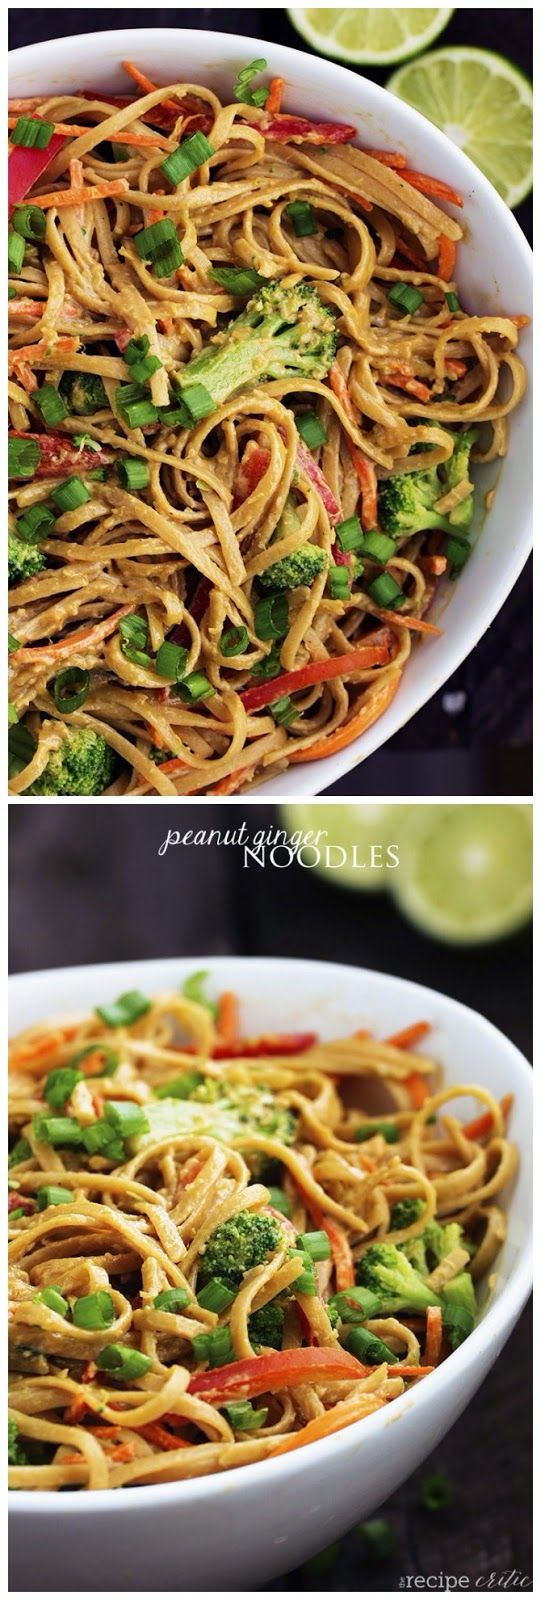 Peanut Ginger Noodles    INGREDIENTS     2½ teaspoons grated lime peel  ¼ cup lime juice  2 Tablespoons reduced sodium soy sauce  2 teasp...